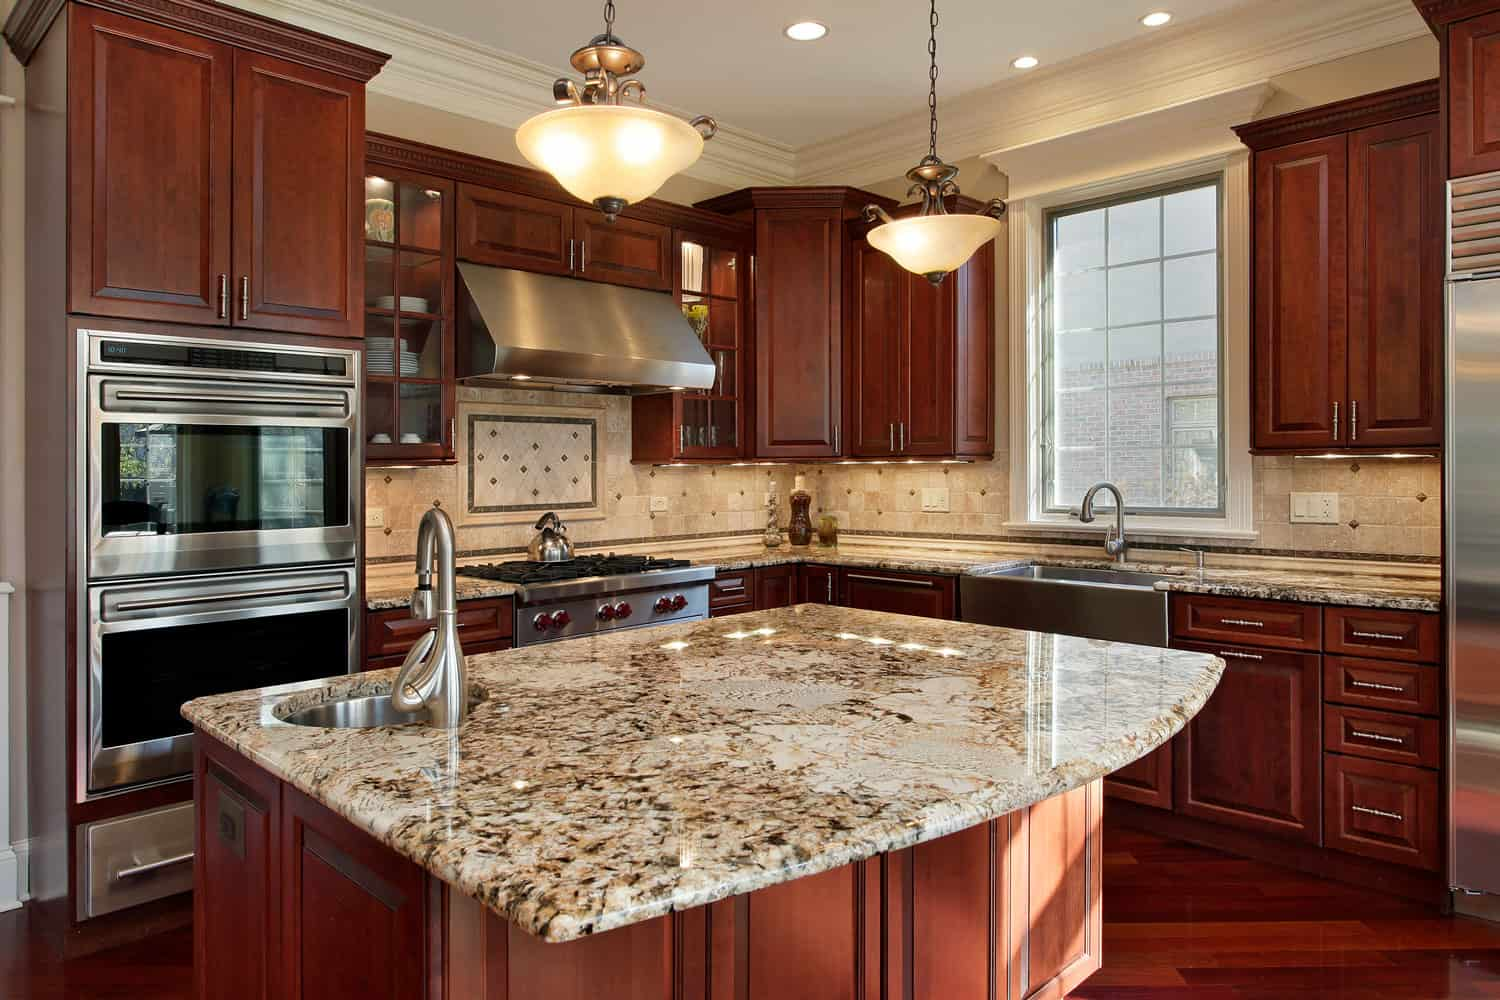 Kitchen with granite island and cabinets